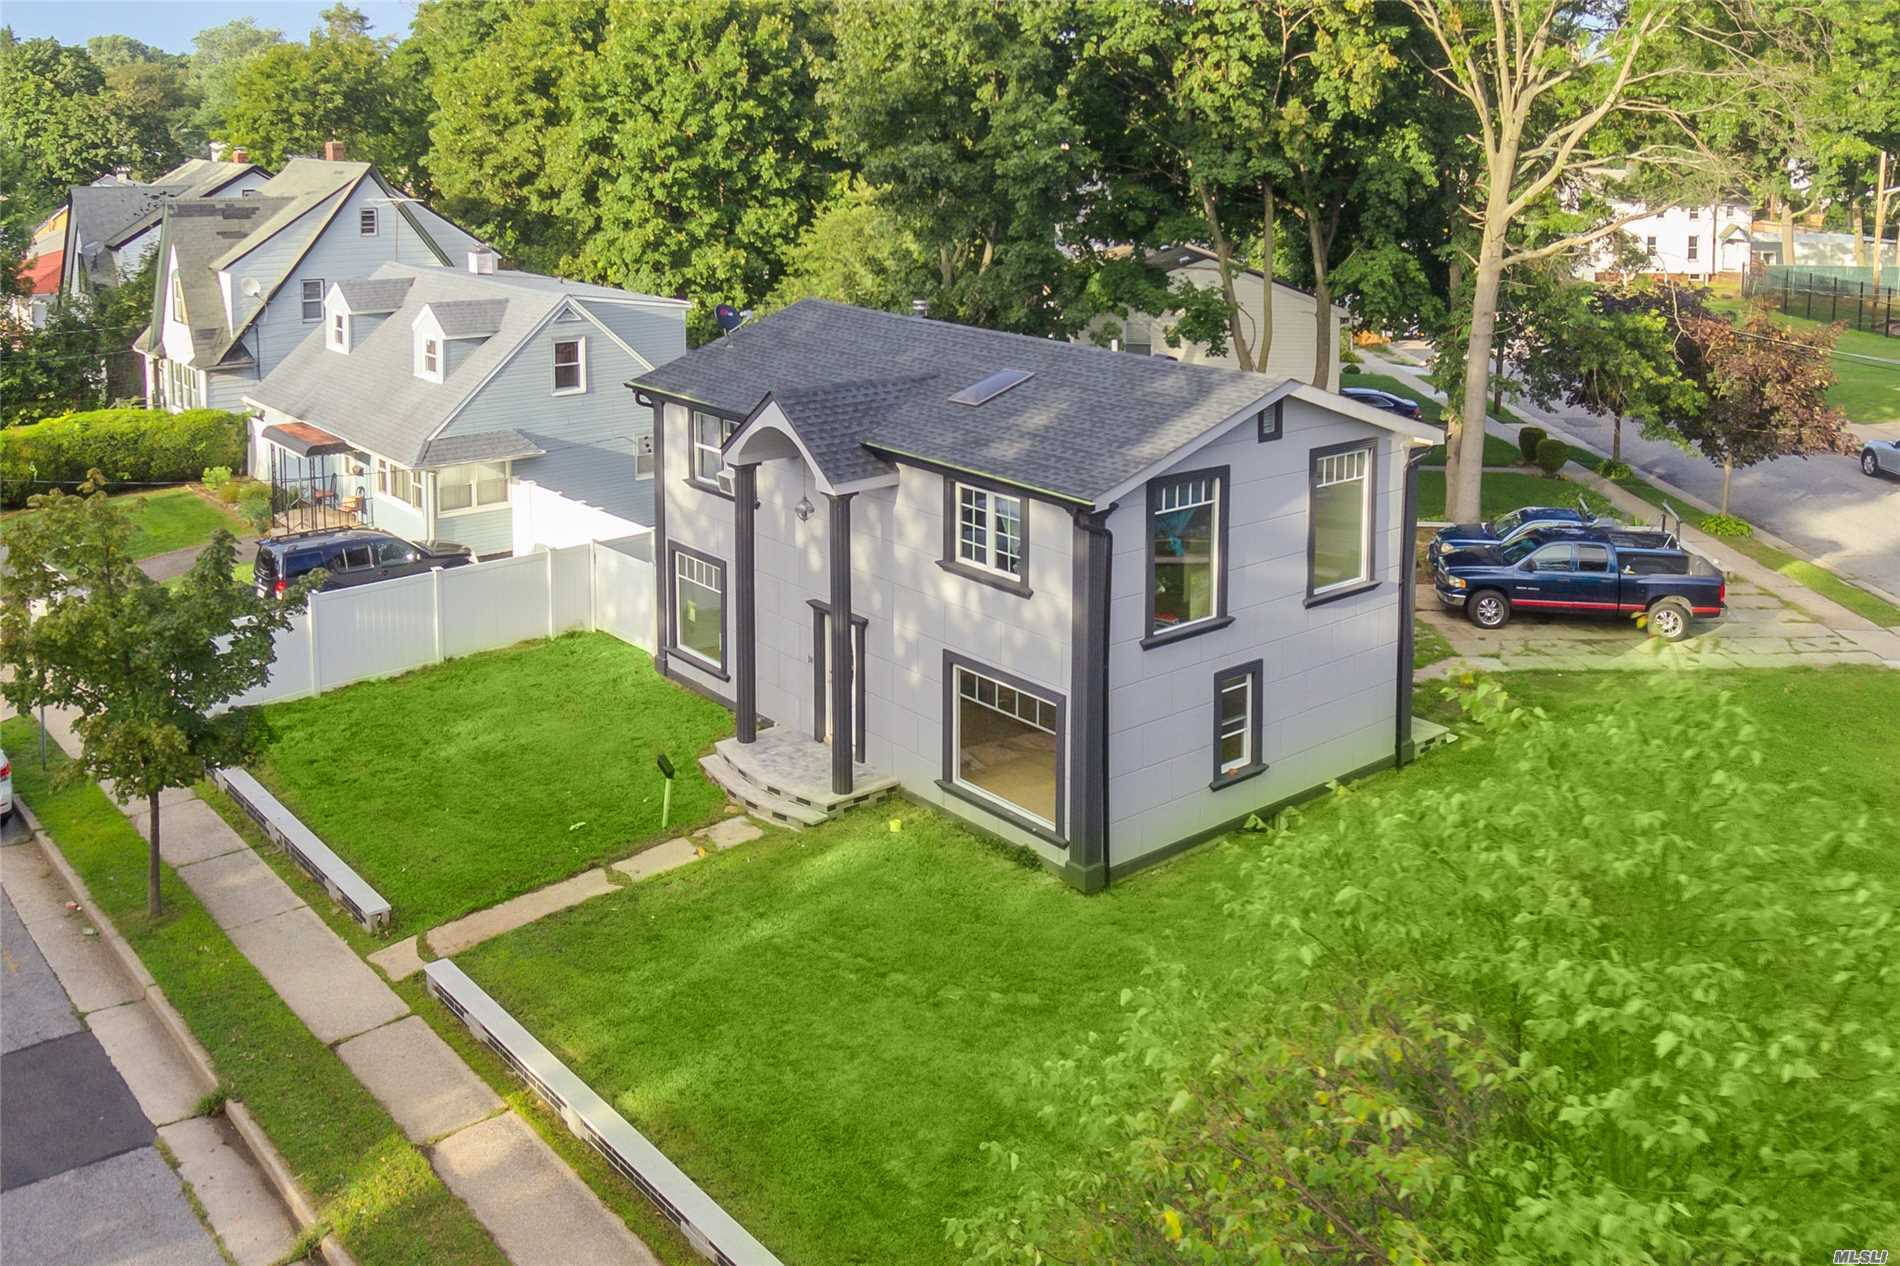 Magnificent Property Located In The Heart Of Hempstead Long Island Ny. Custom Built On A Corner Lot. Fully Designed From An Artist Point Of View. A Must View To Appreciate. 4 Bedrooms, 2 Baths, Full Finished Basement, Huge Backyard, 5 Car Private Driveway, And Hardwood Floors Throughout.